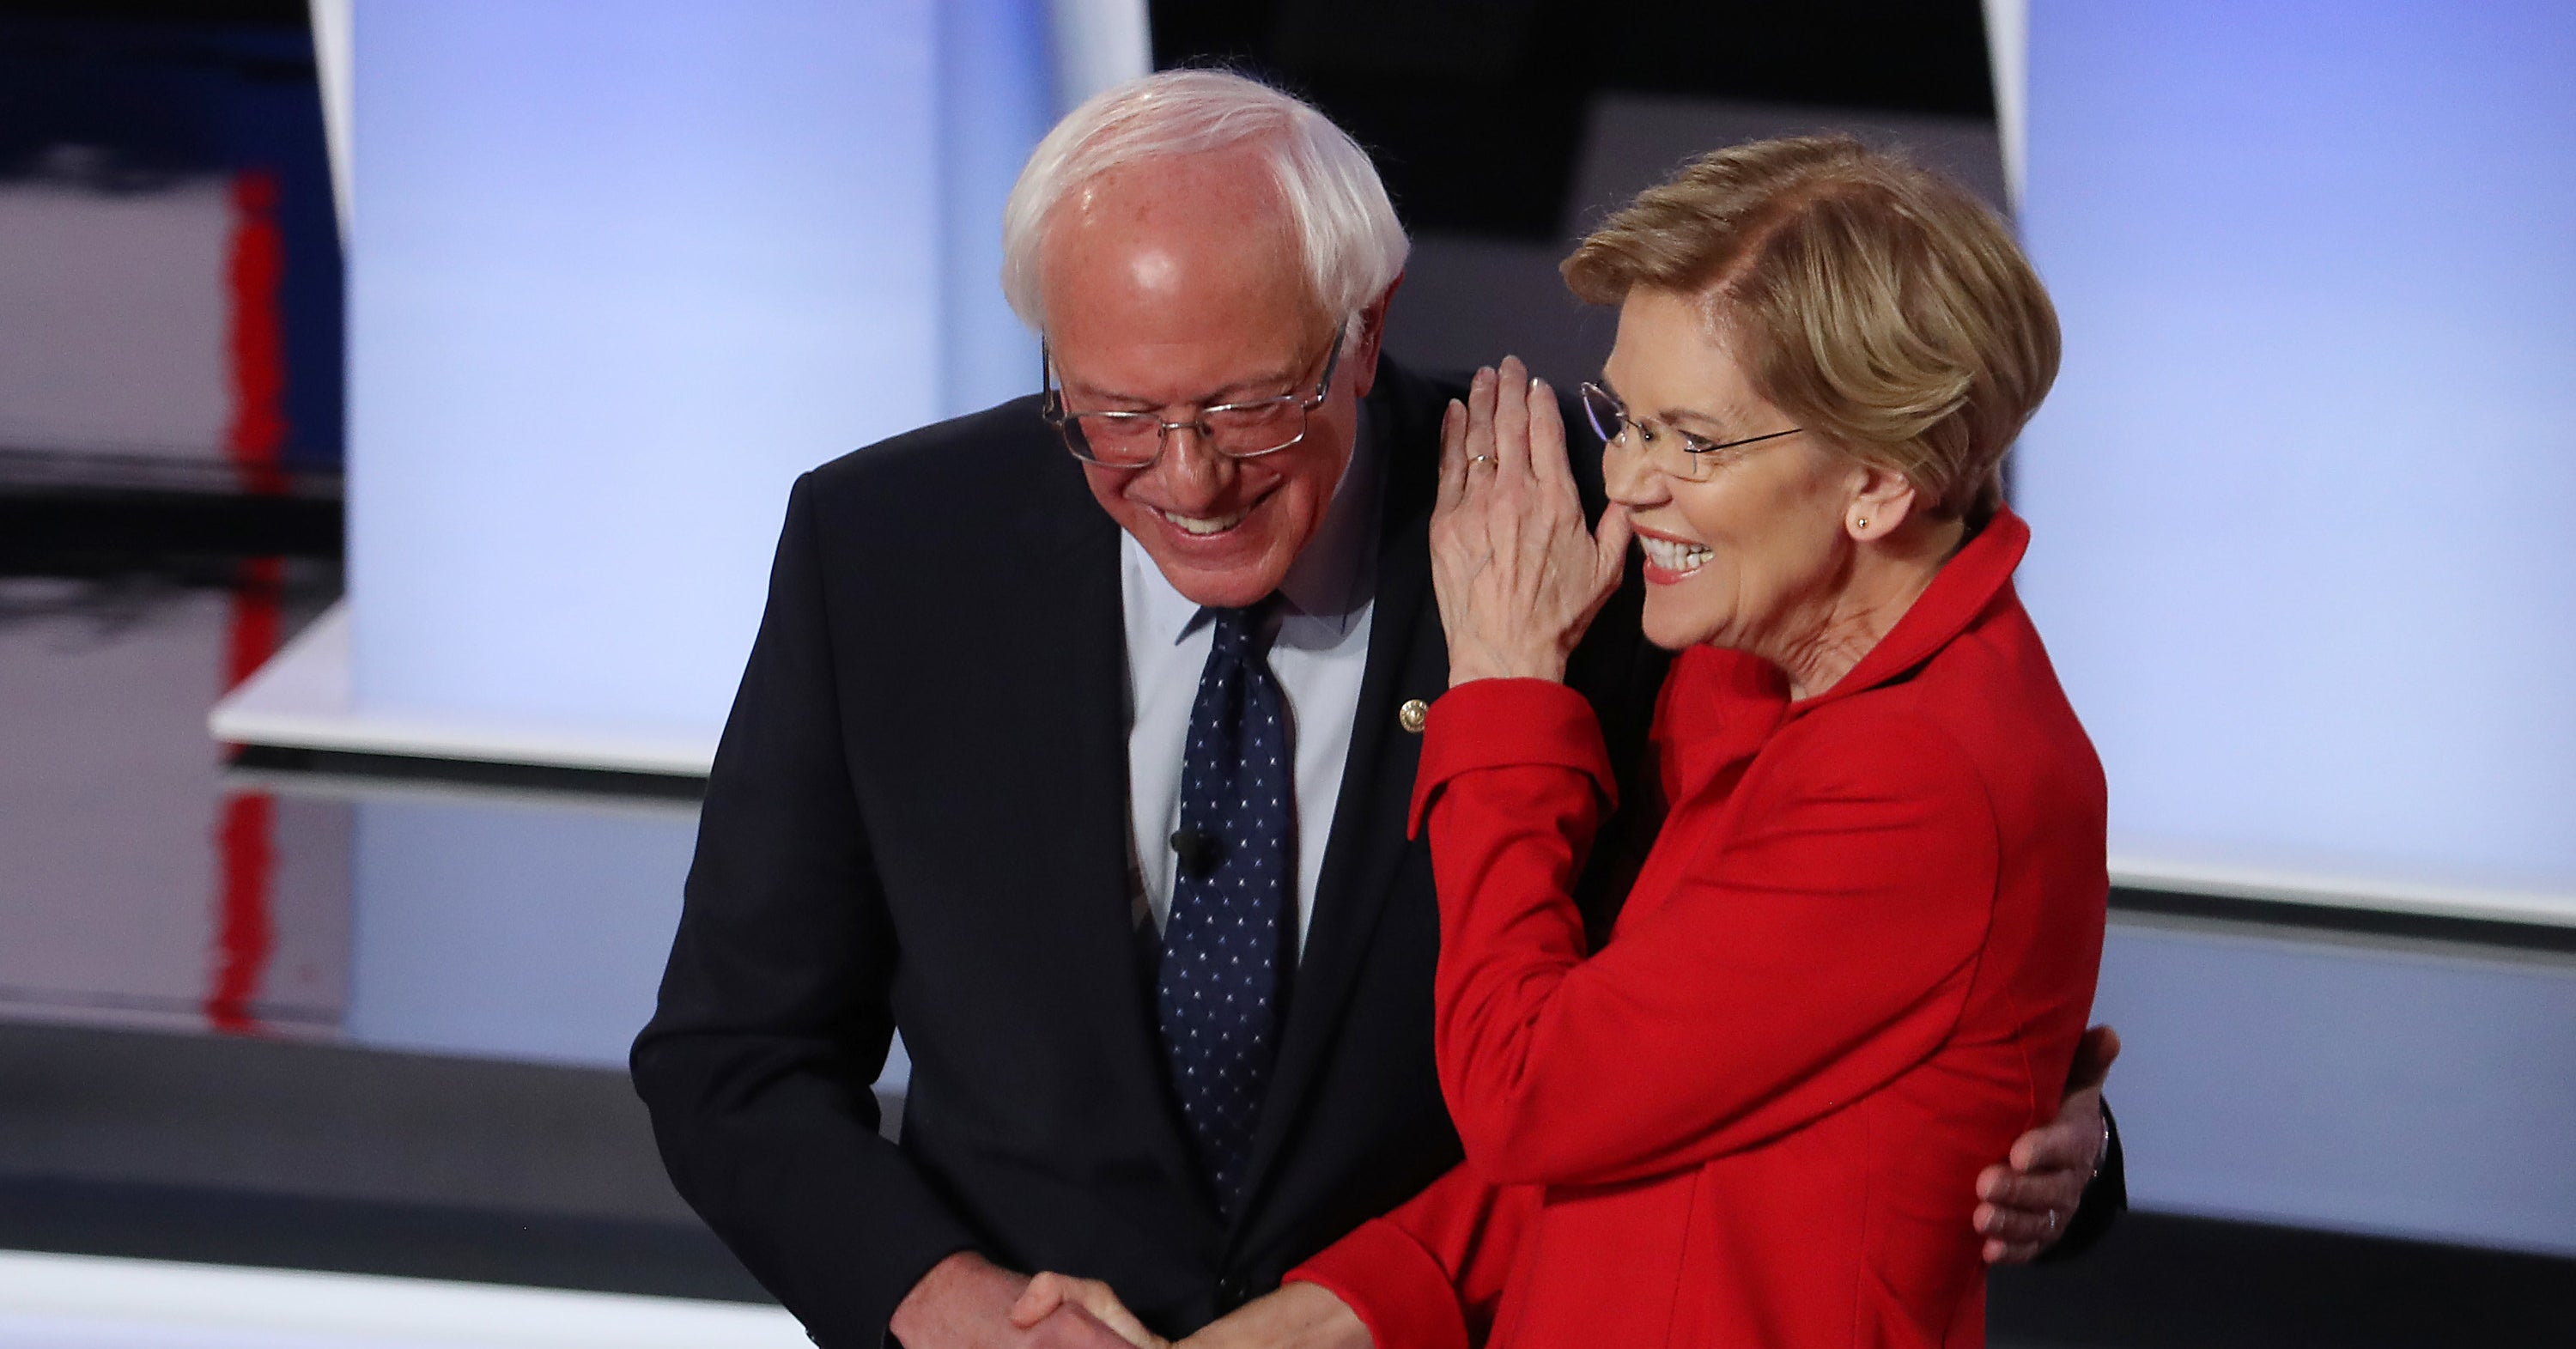 Elizabeth Warren's Campaign Is Telling Key Supporters To De-Escalate From The Fight With Bernie Sanders